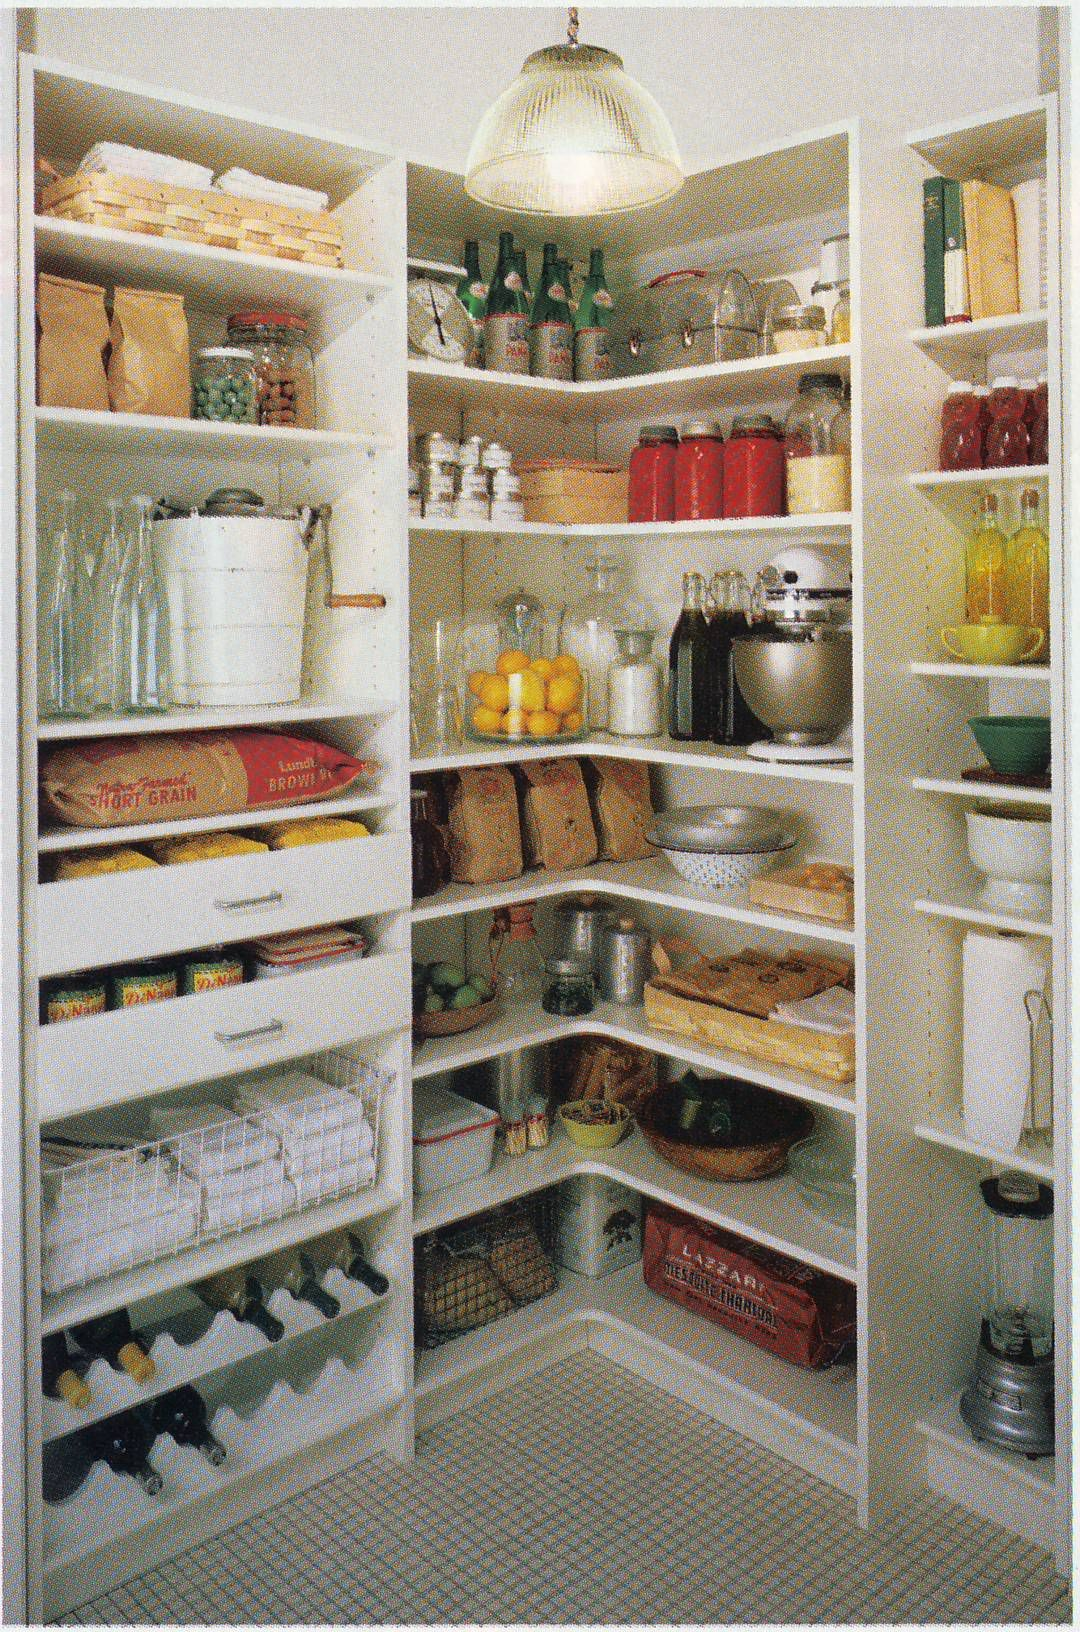 Pantry inspiration  organization for life  home  Kitchen larder Pantry organization Home